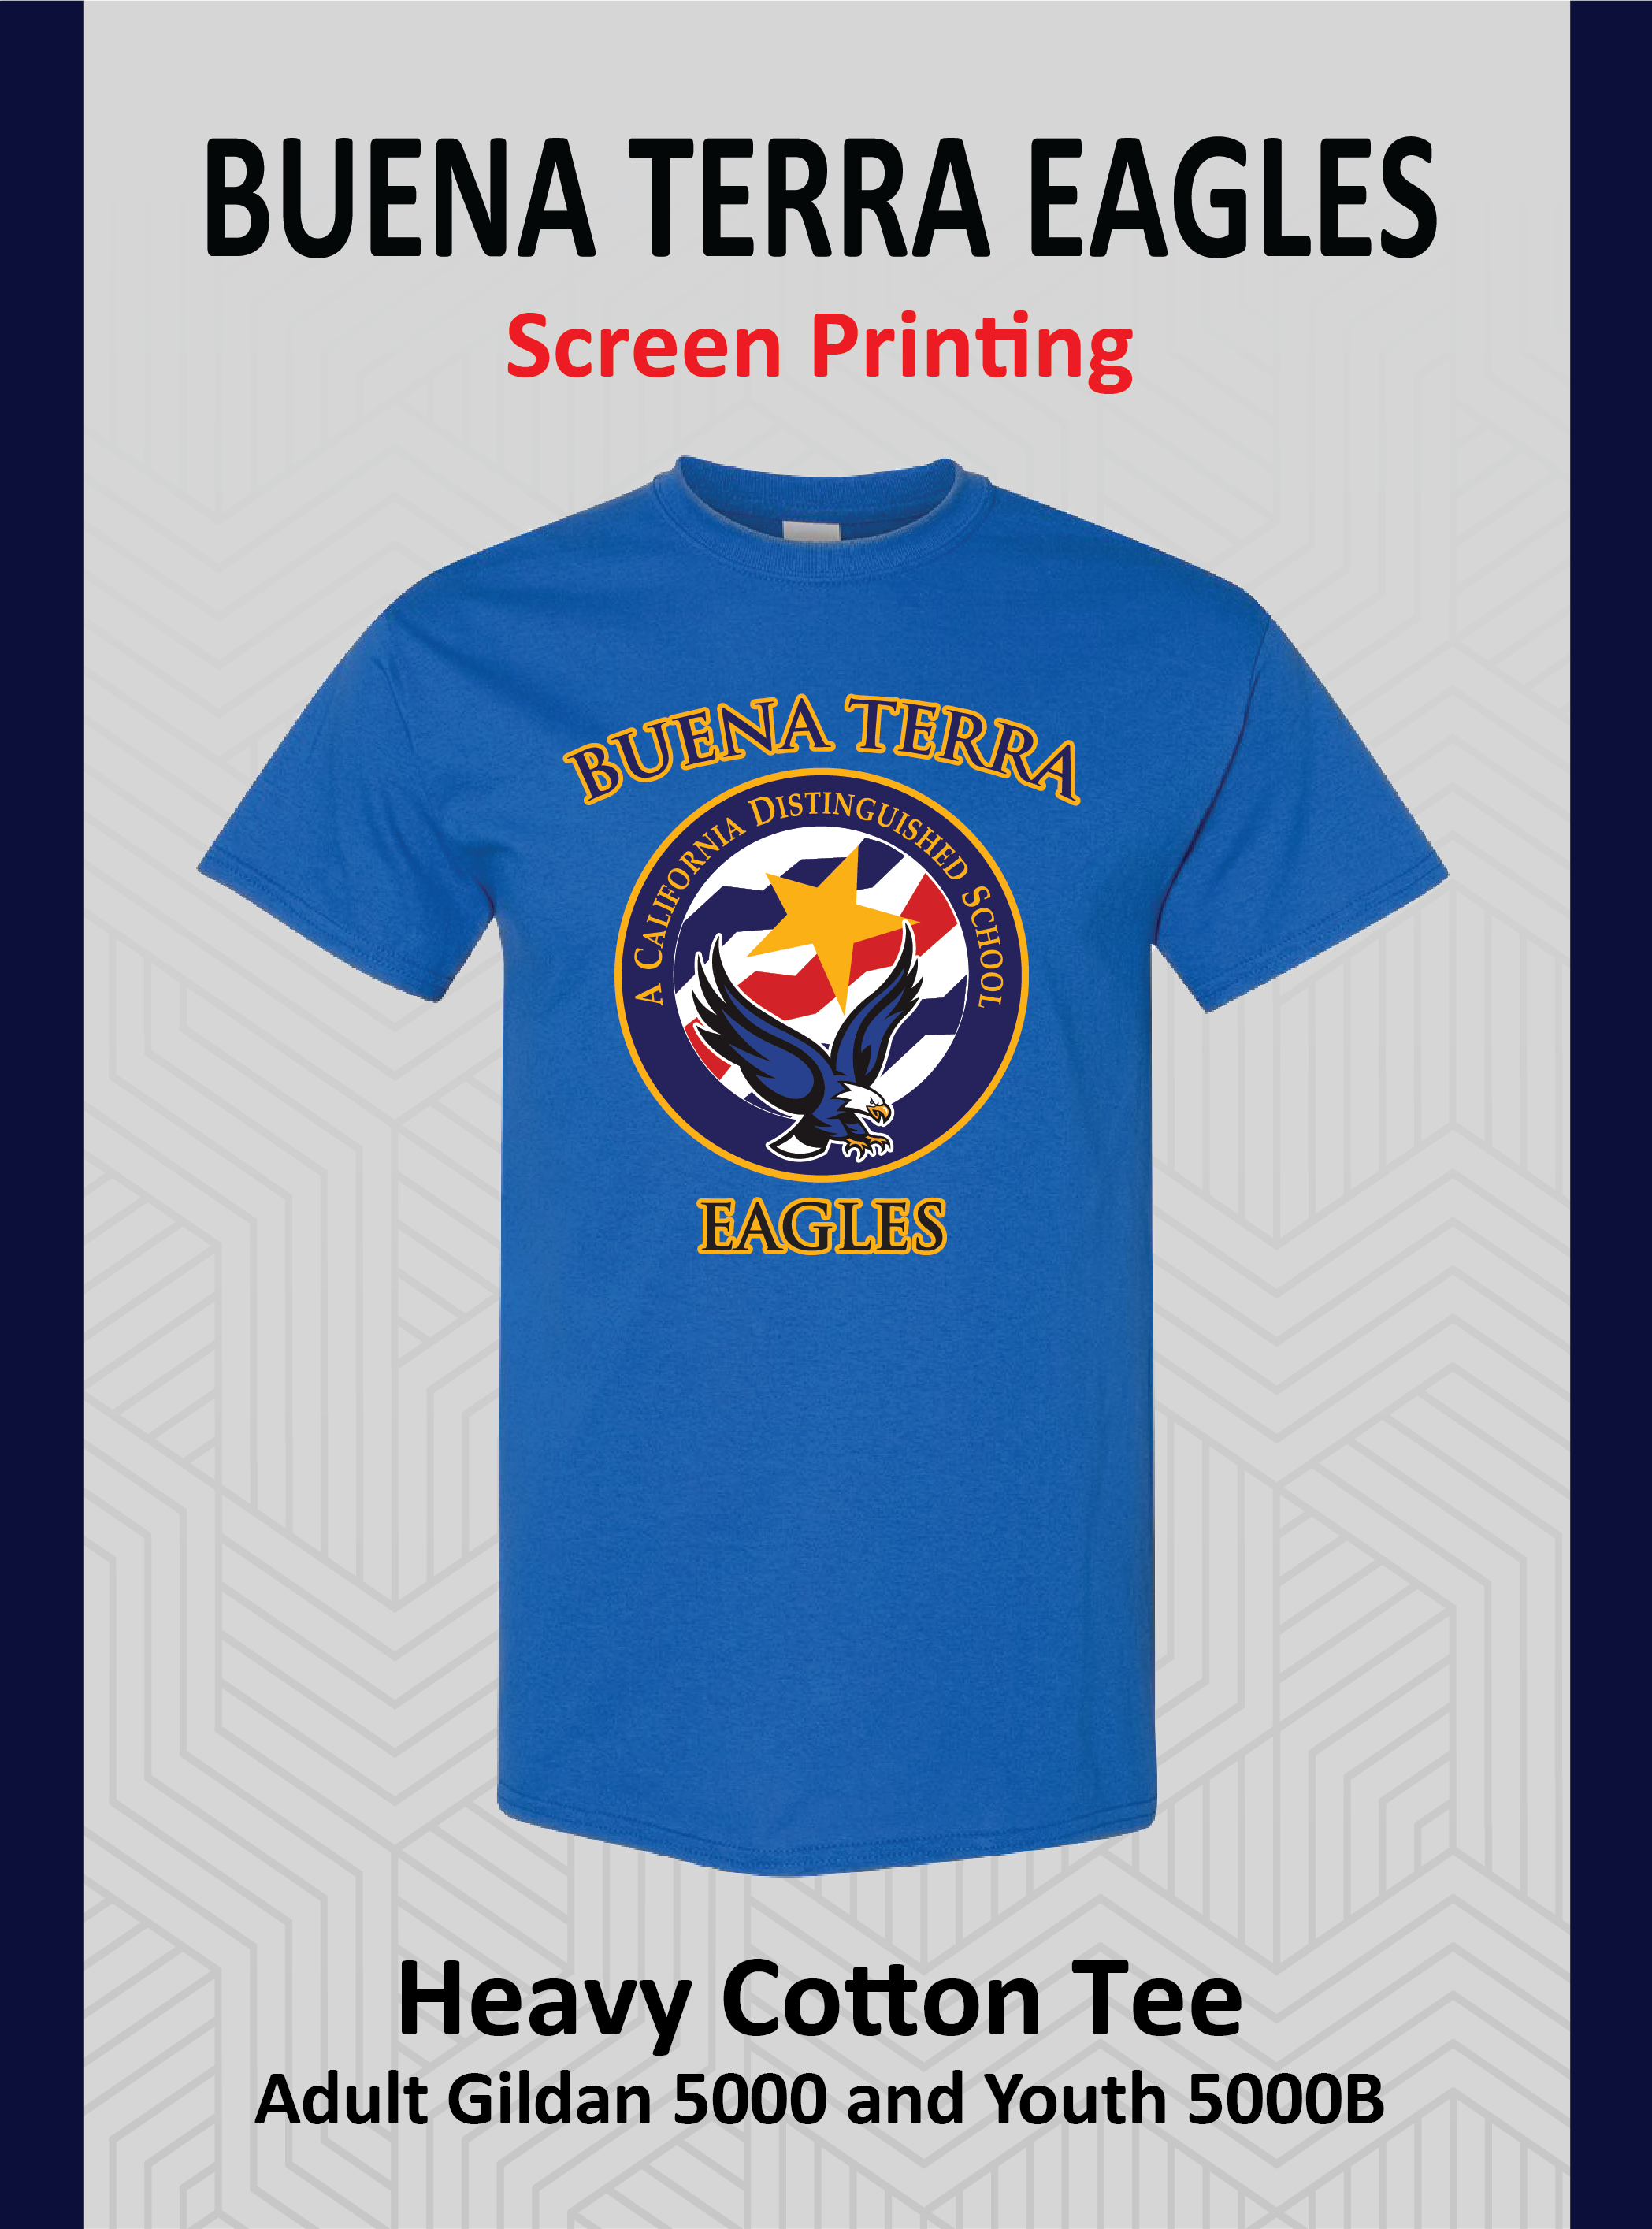 Buena Terra Royal Tee (Screen Printing)